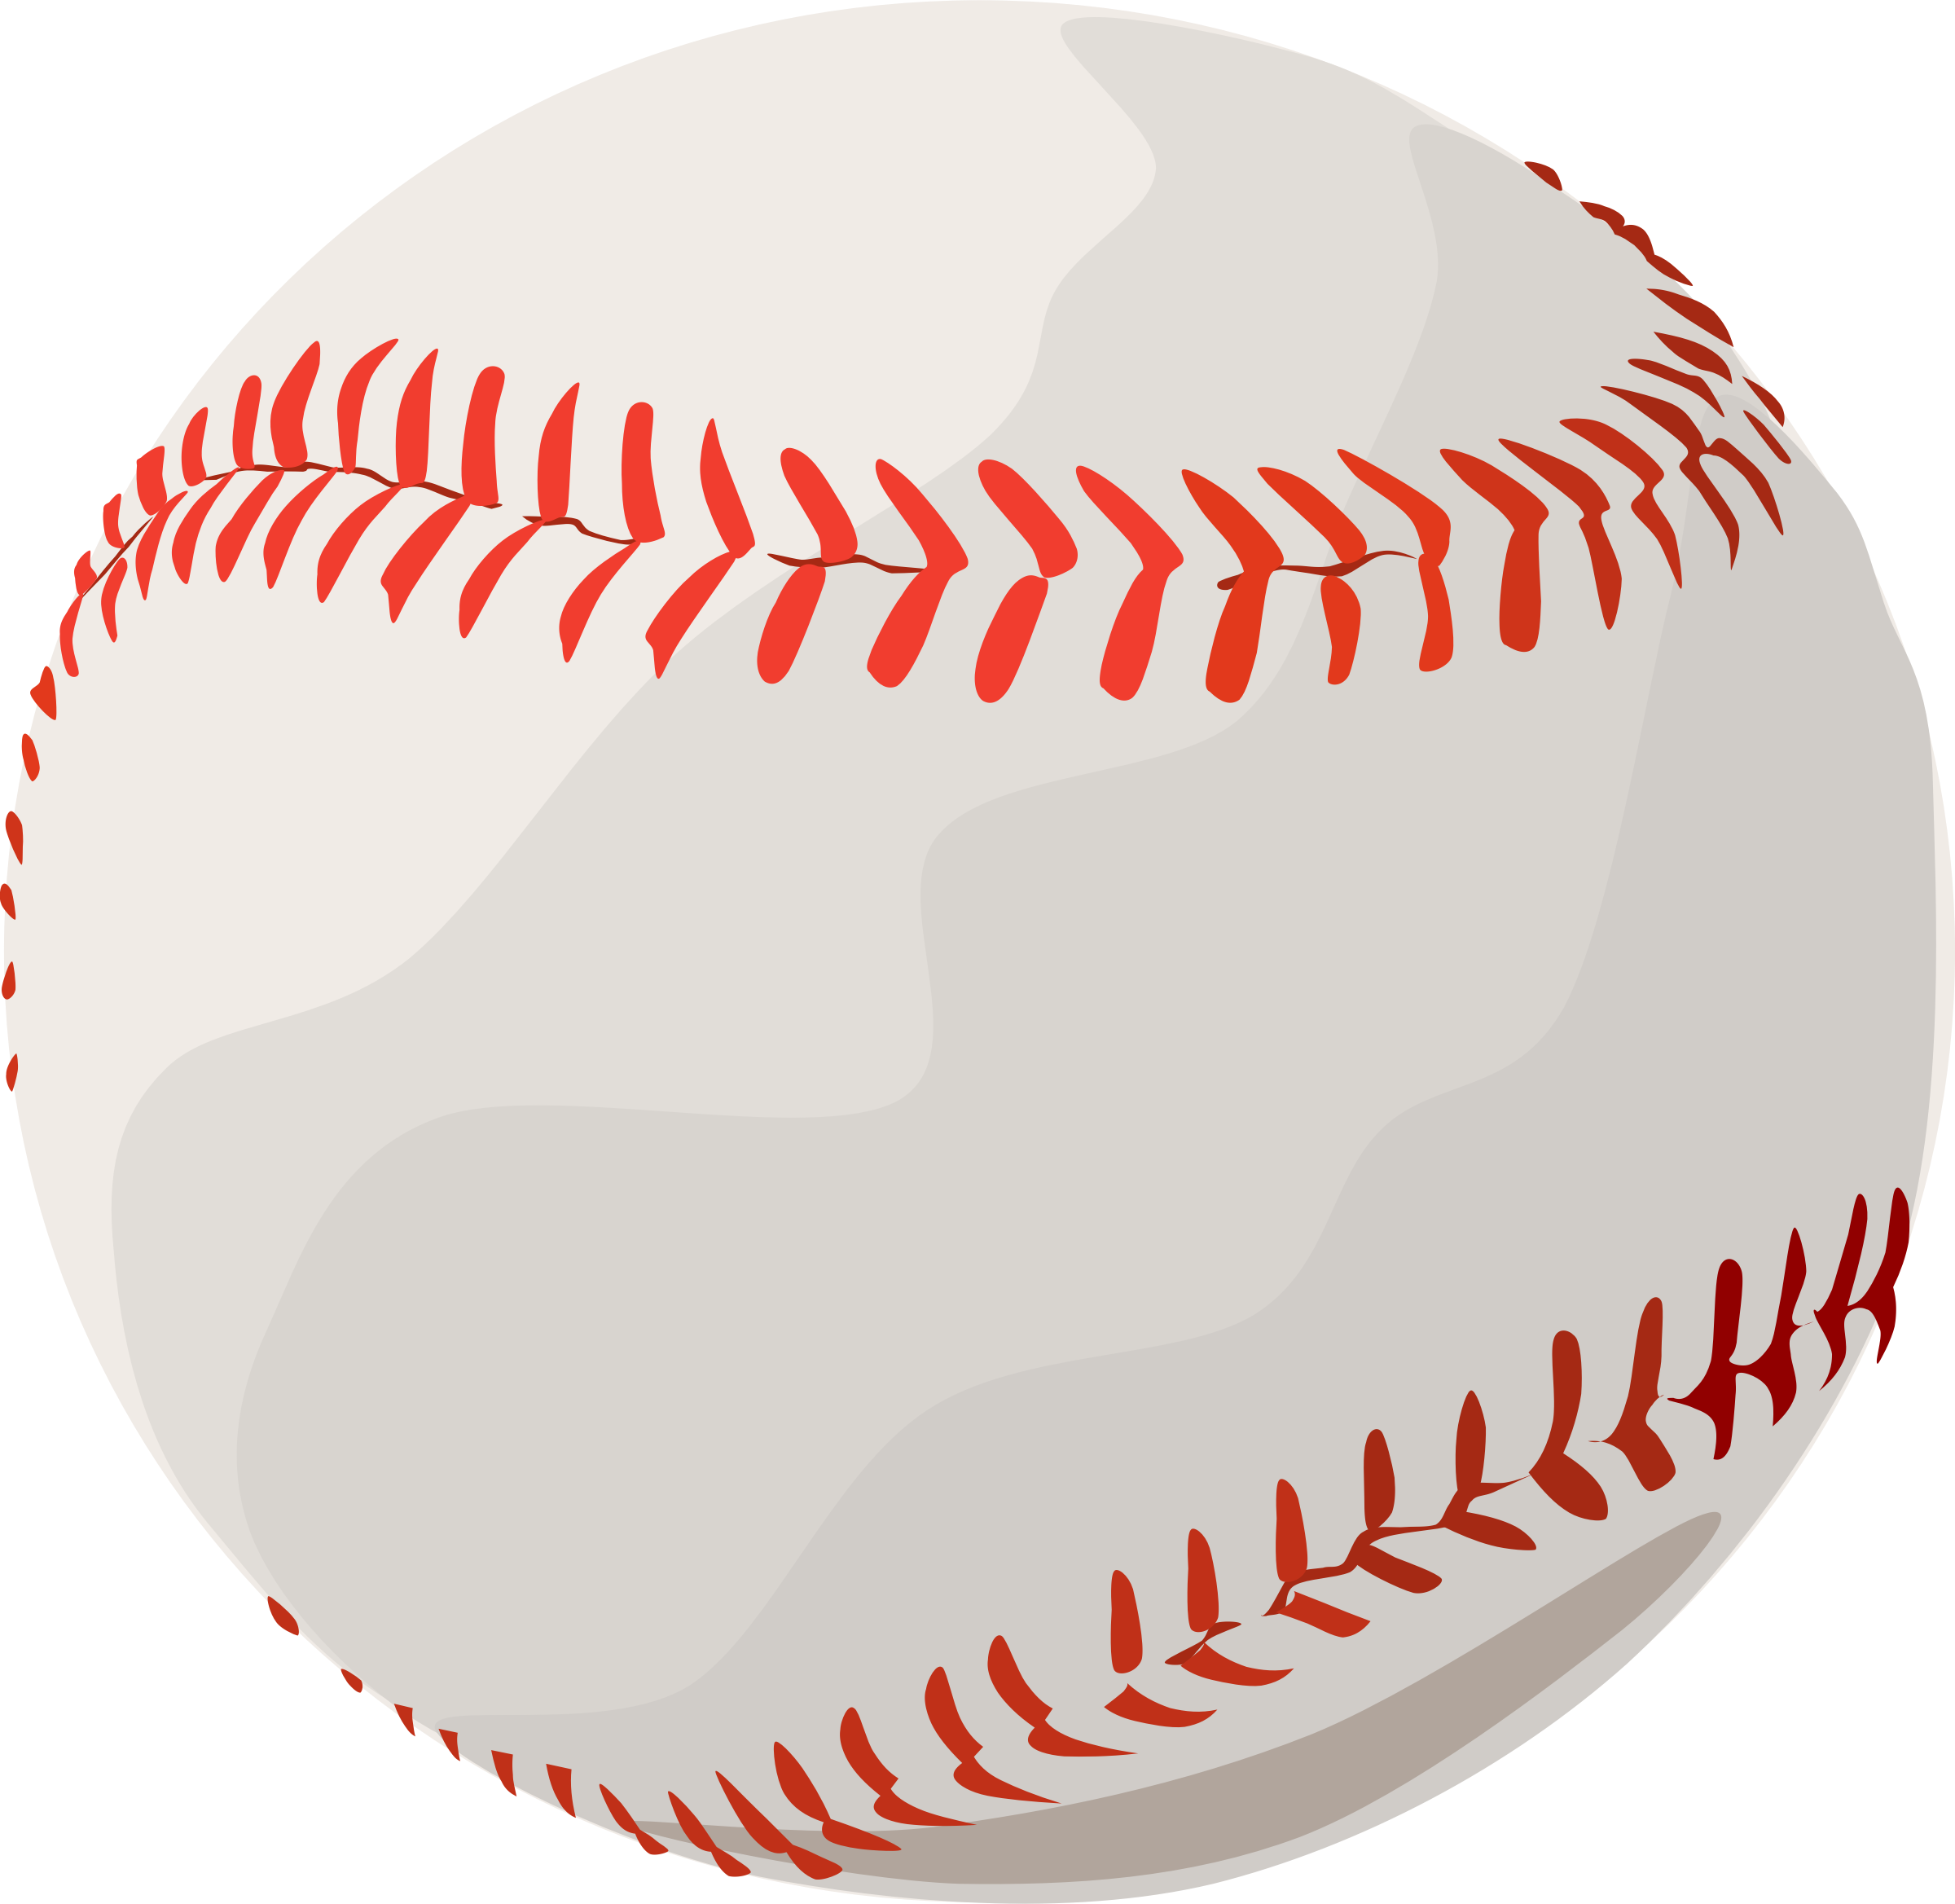 Picture clipart baseball. Png images free download